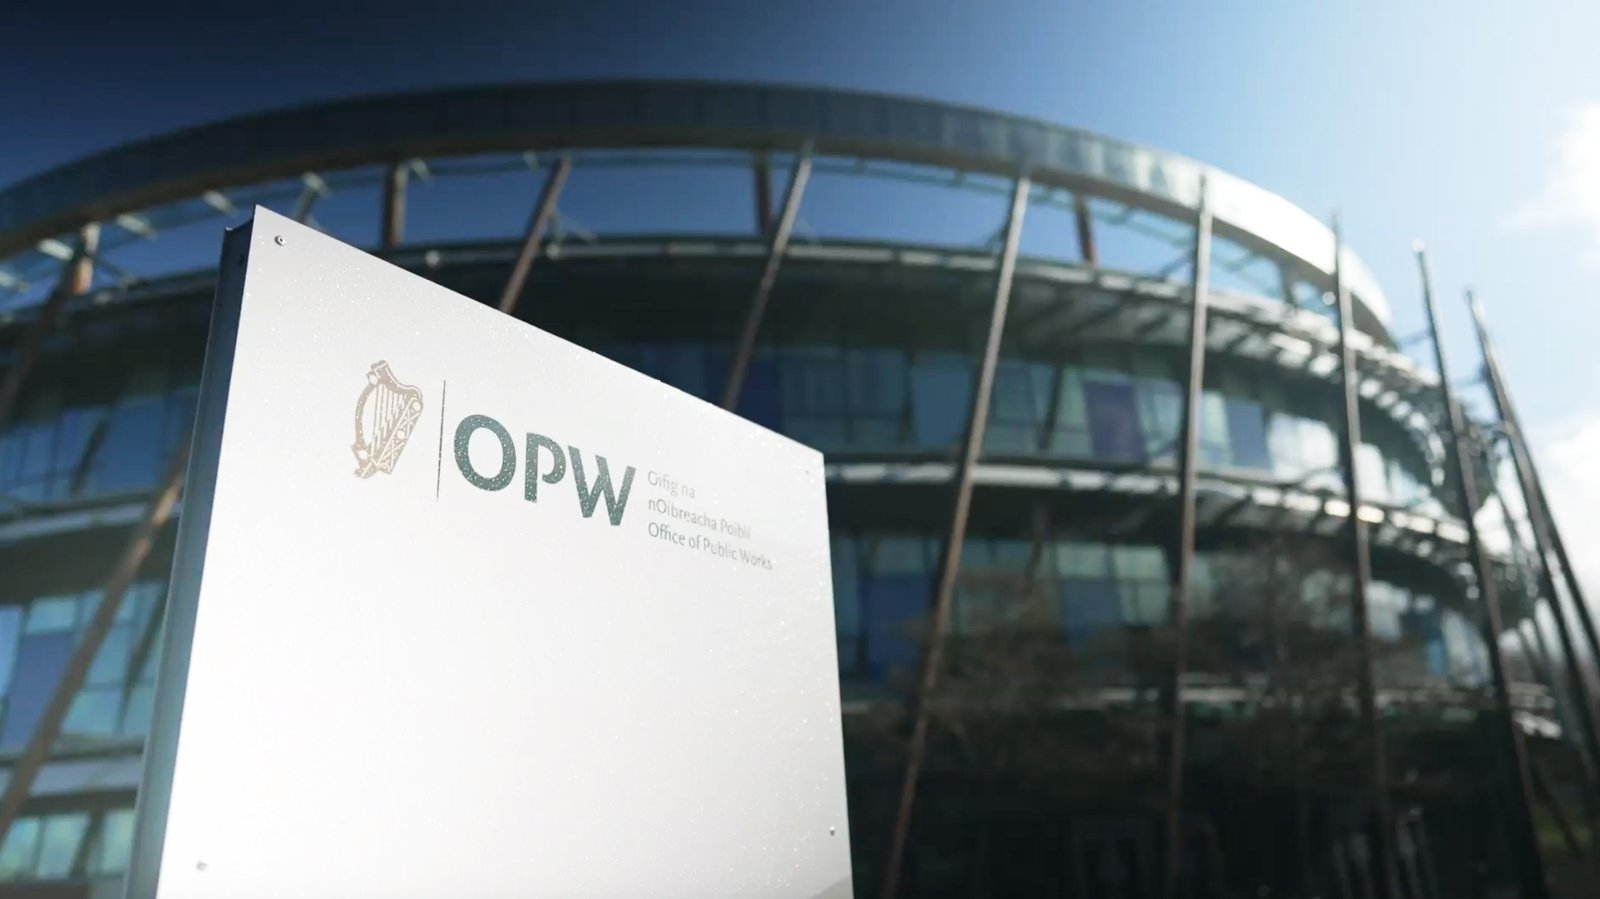 Image - The OPW maintains and conserves some of our best loved parks, monuments and institutions